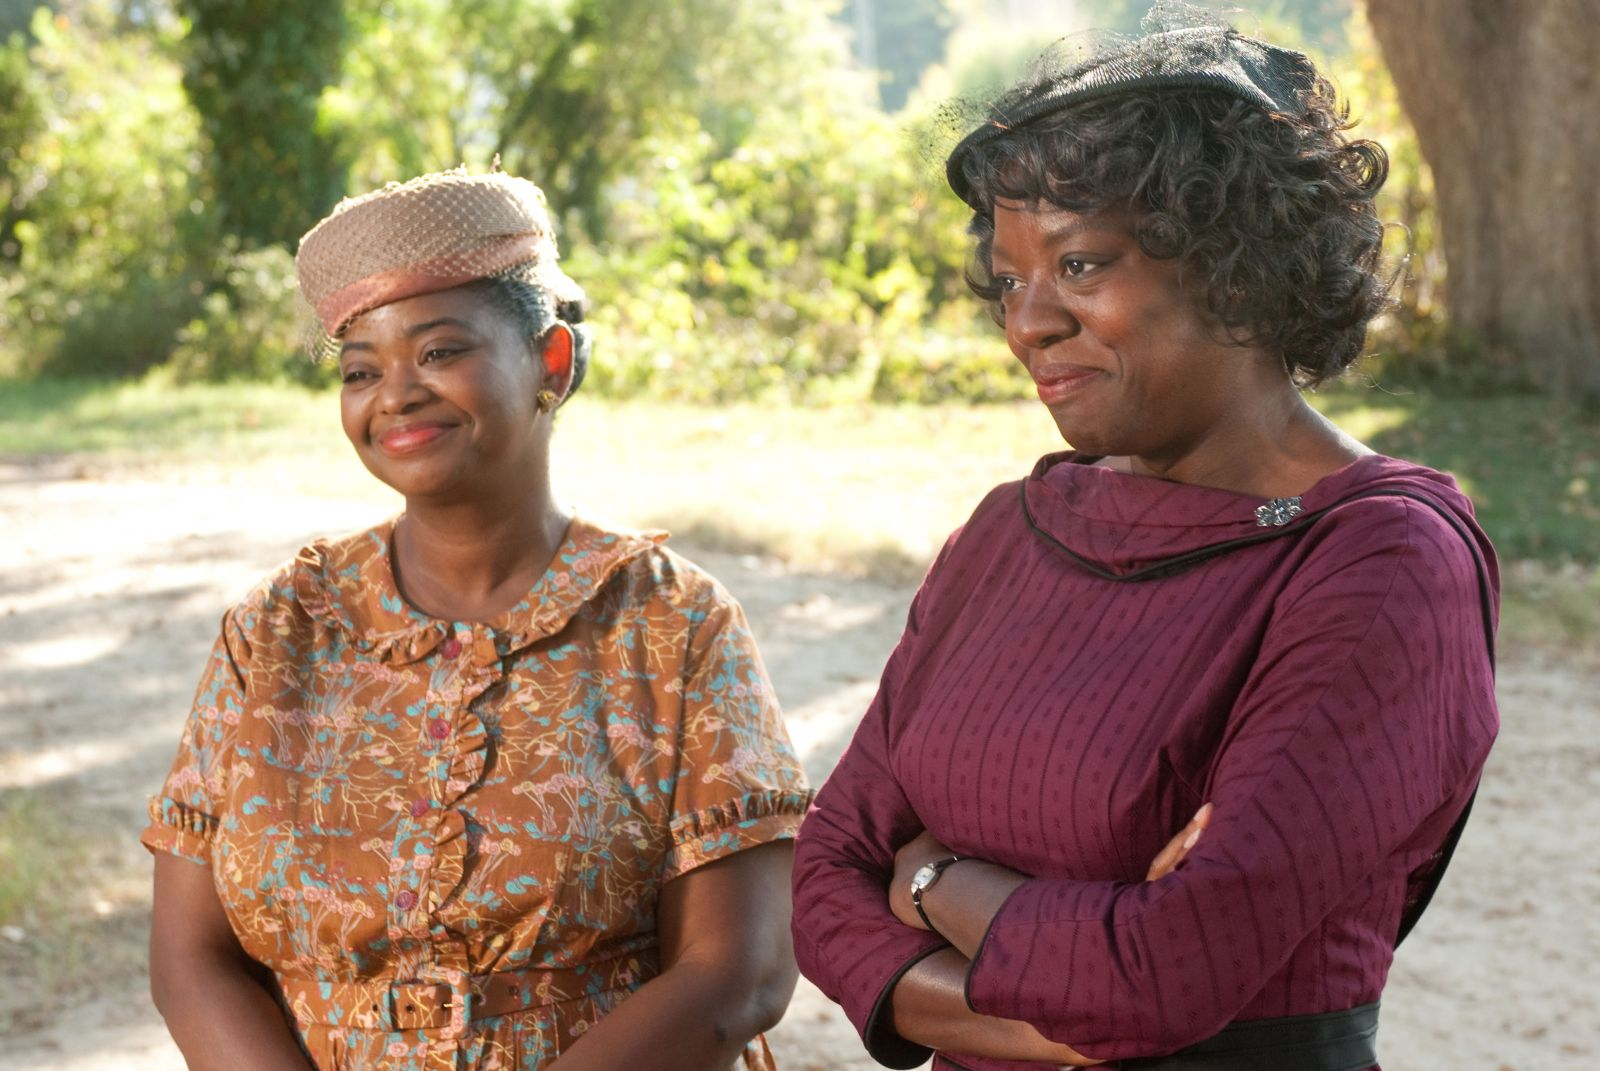 THE HELP Movie Review + Cast Q & A – Pop Culture Nerd